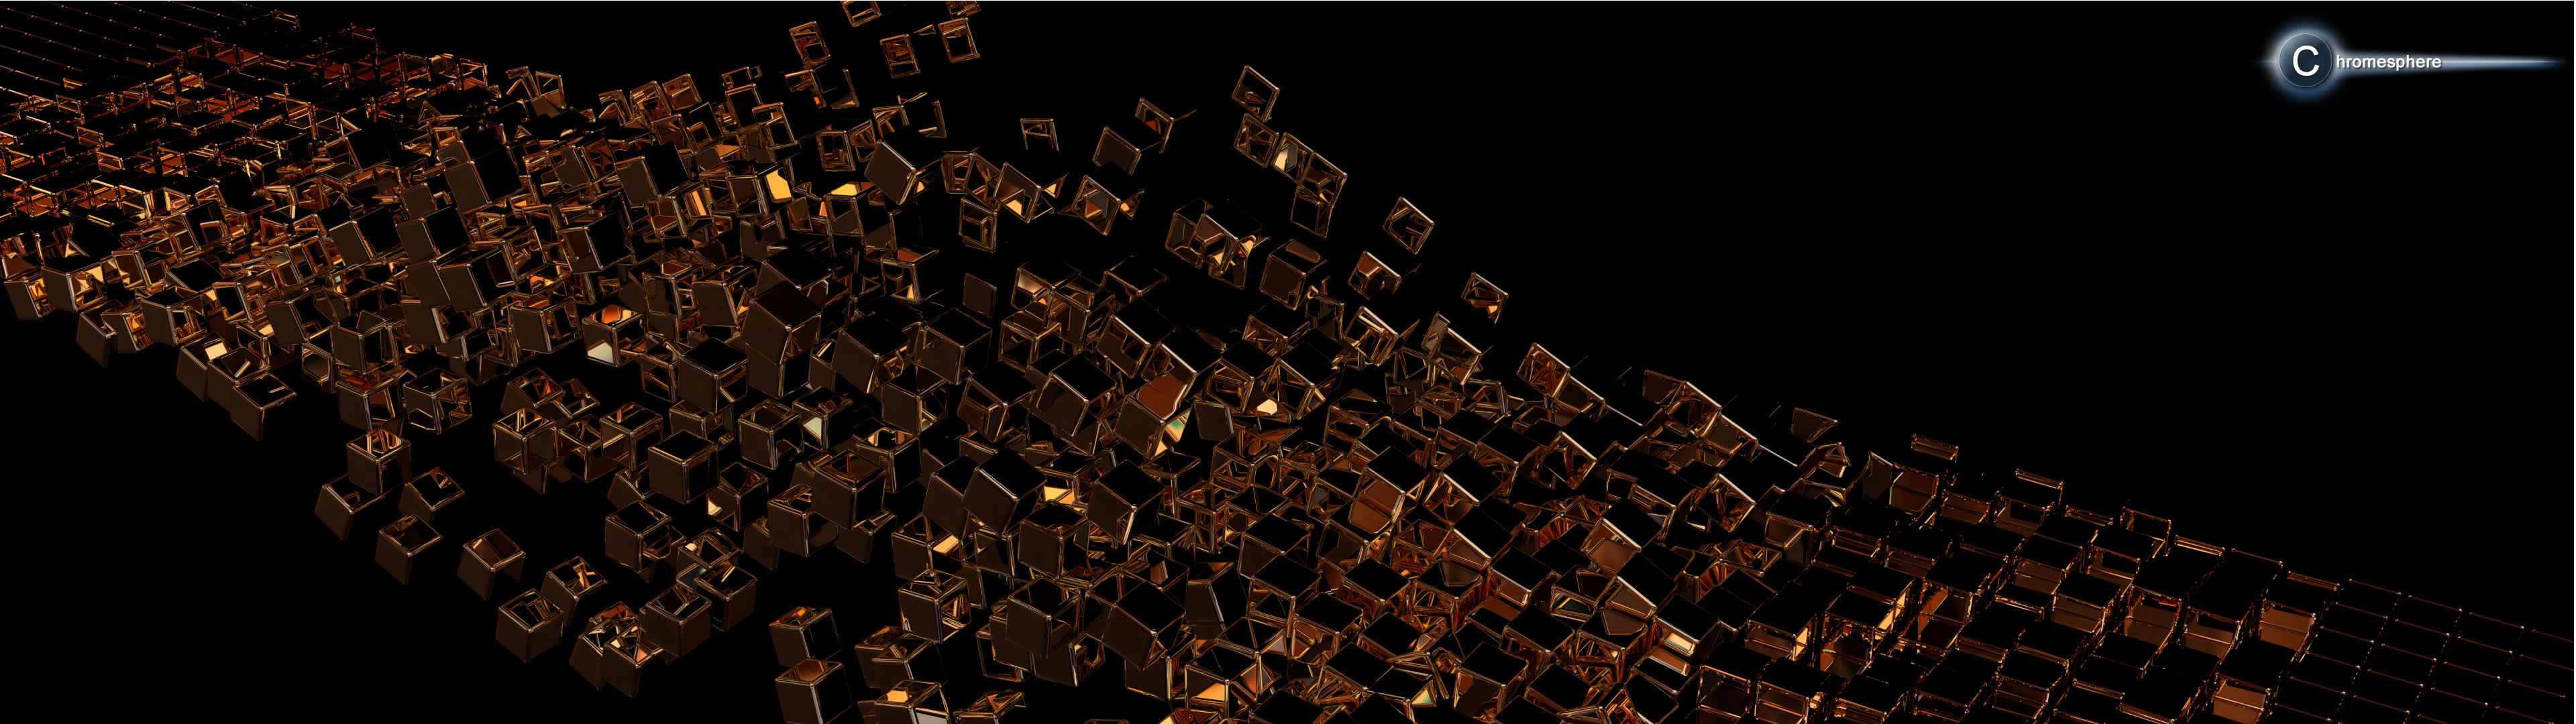 vertical resolutions 3d wallpaper backgrounds including dual monitor 3840x1080